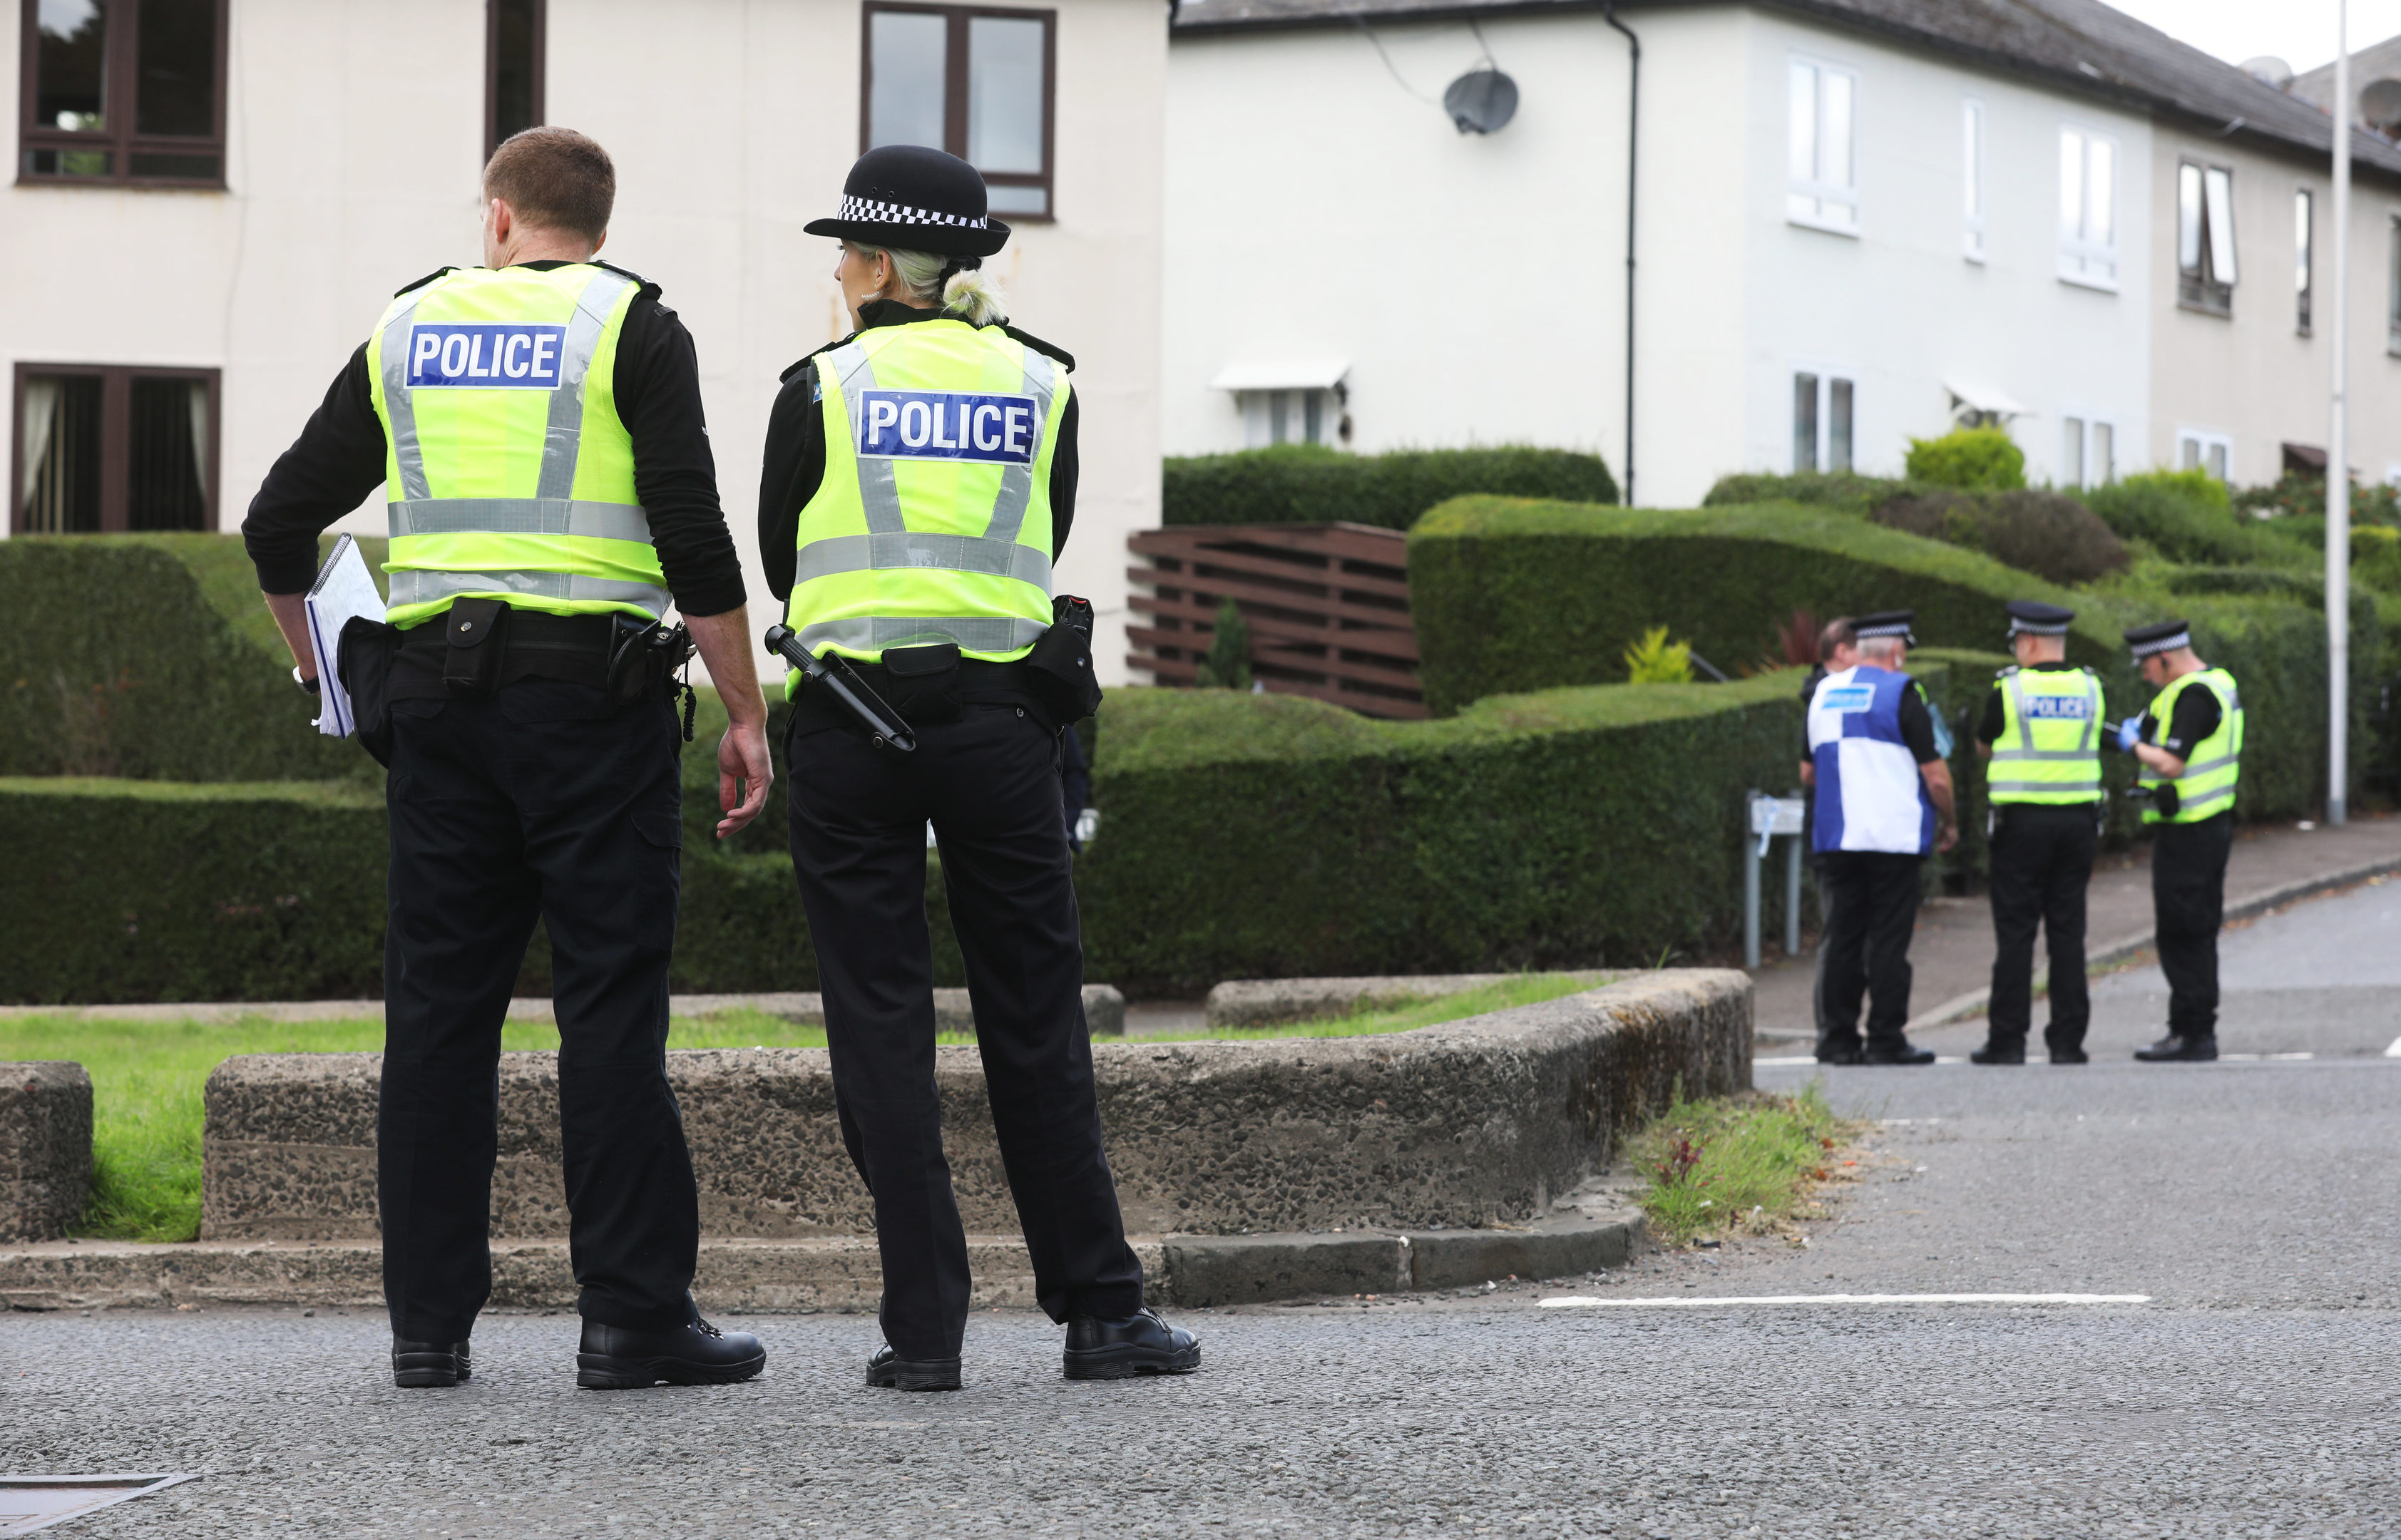 Emergency services at the scene of a bomb scare in Dundee on Carlochie Place.